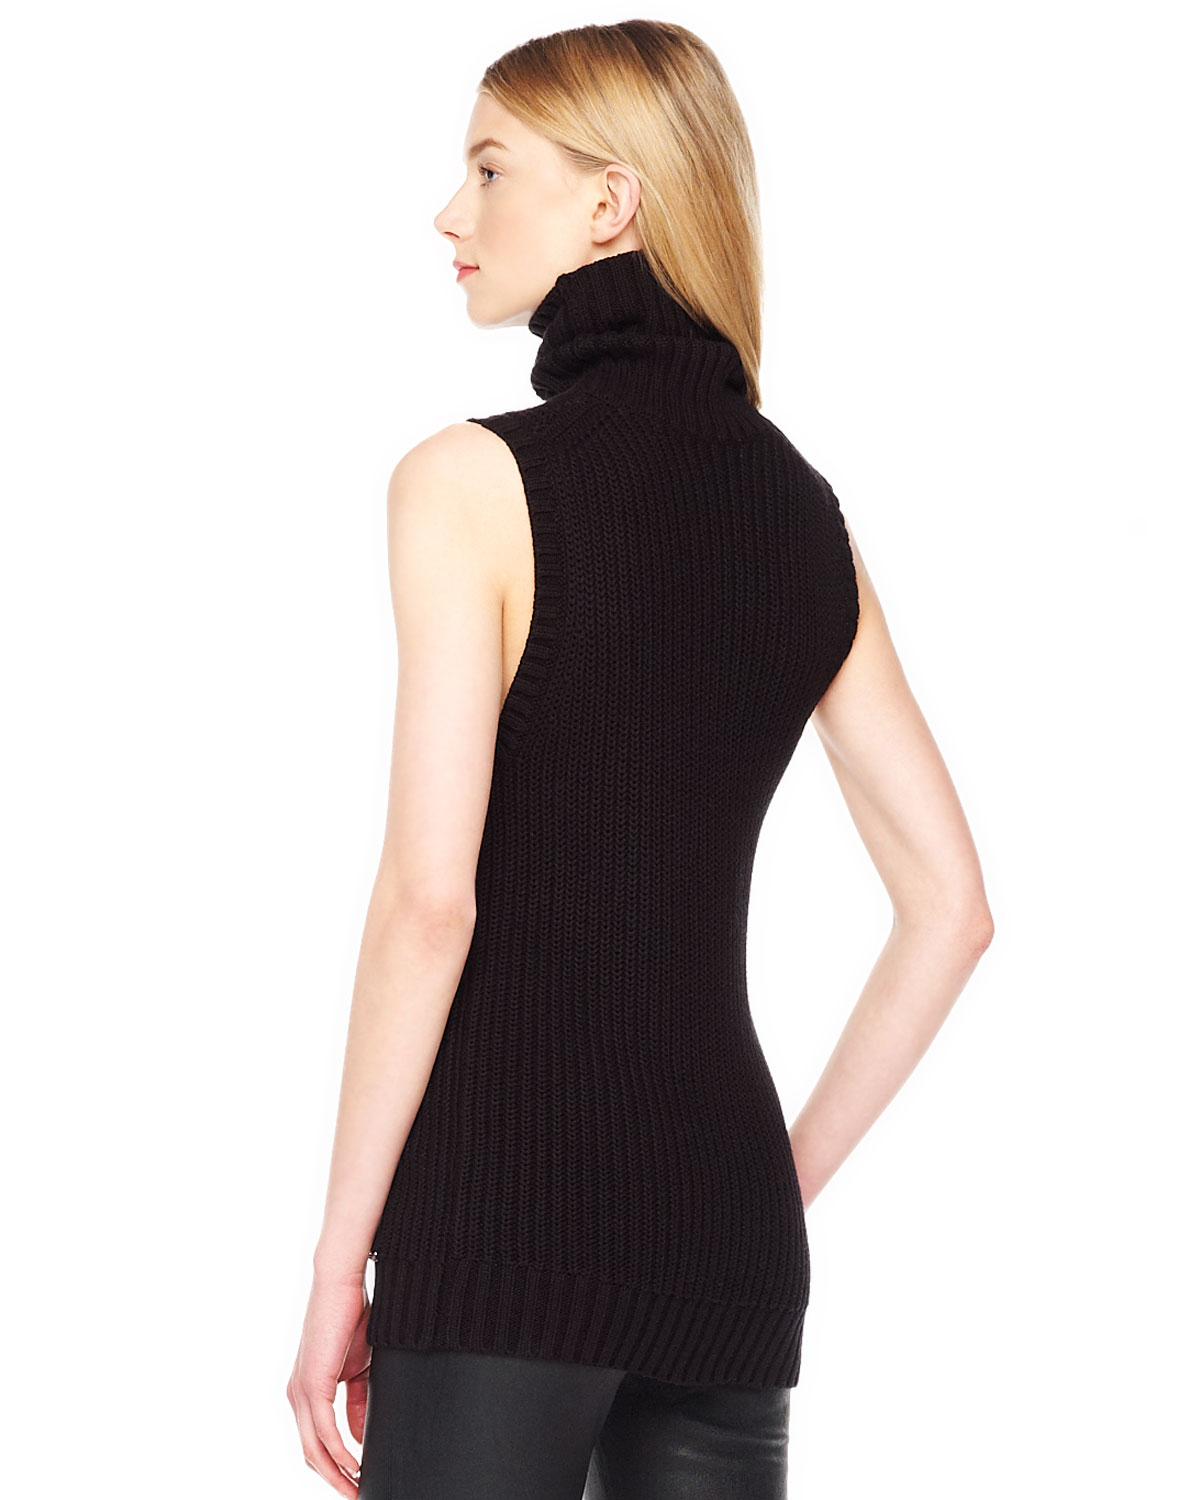 903d72a5fde7b Lyst - Michael Kors Ribbed Sleeveless Turtleneck in Black